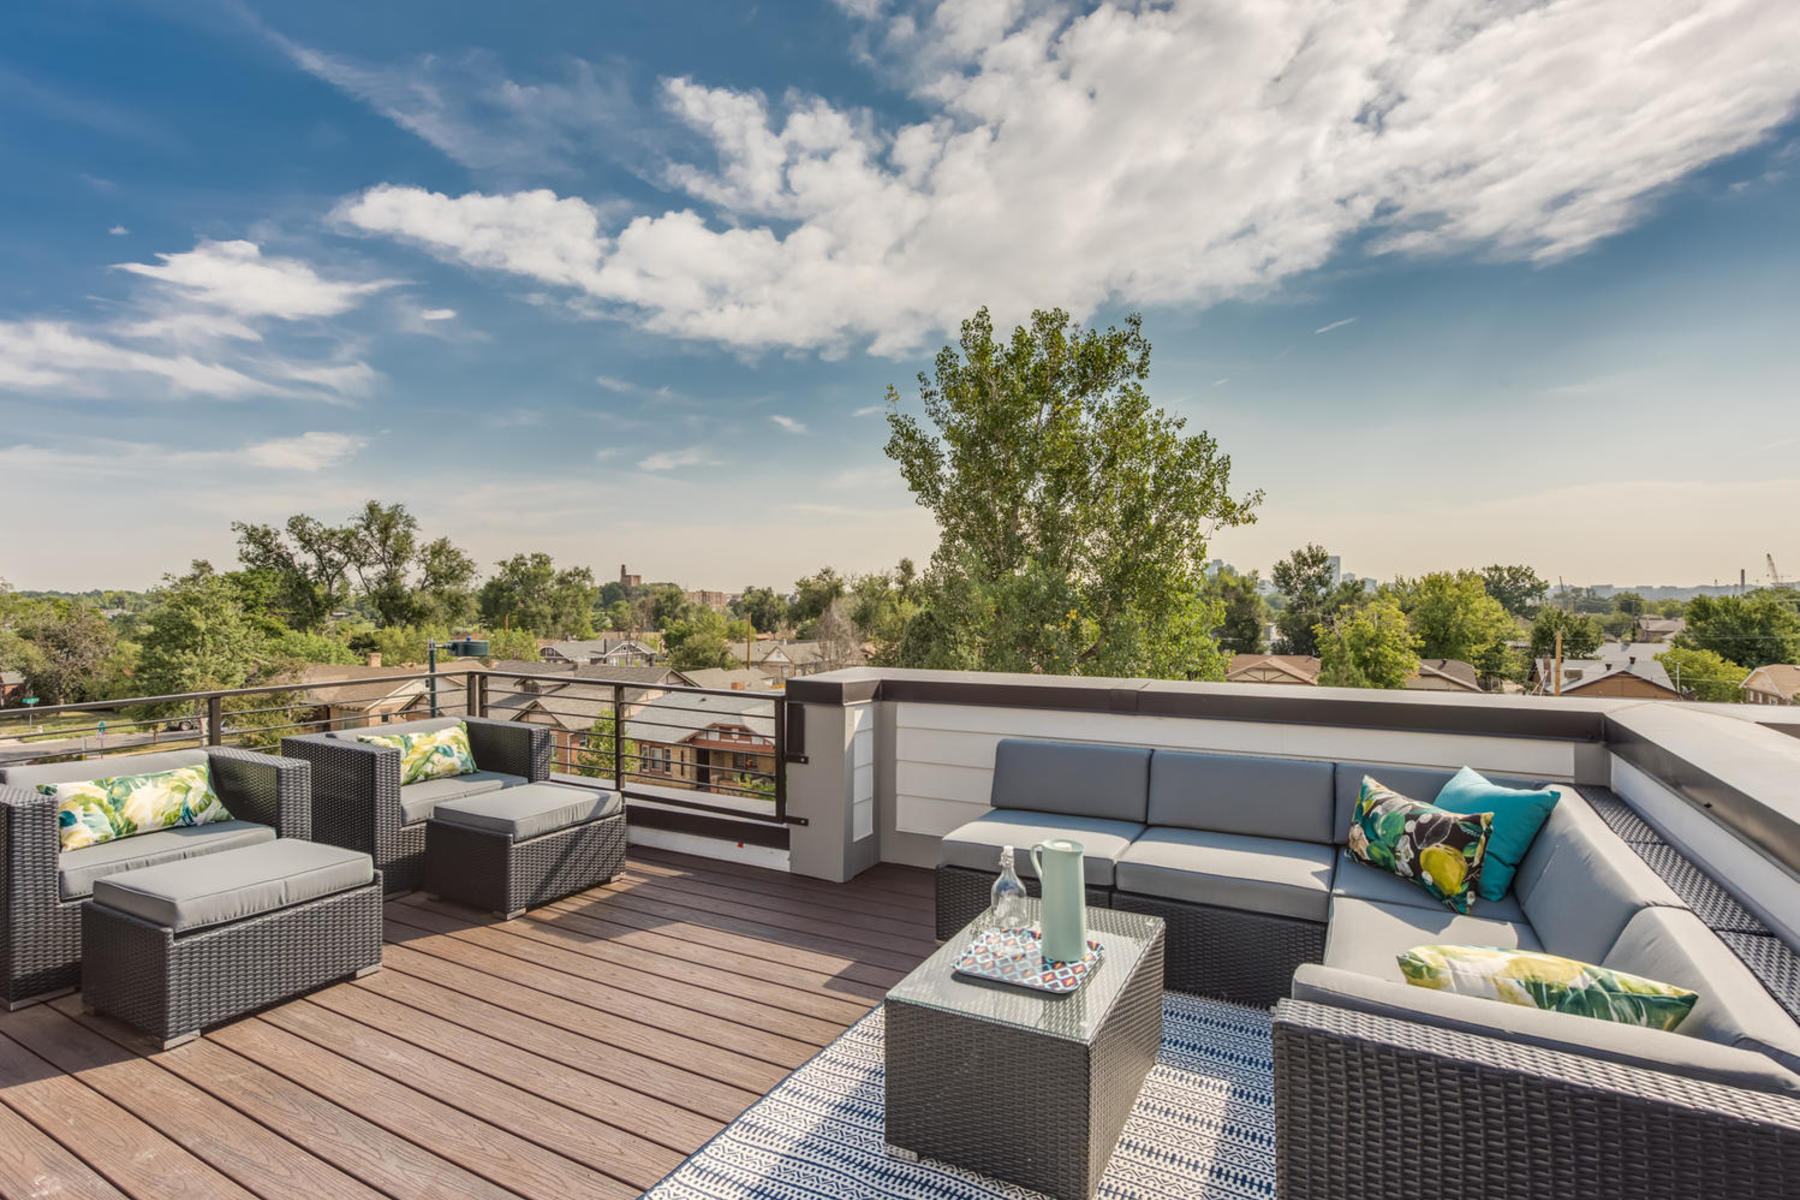 Townhouse for Active at TOWNHOME FEATURING EXPANSIVE ROOFTOP DECK 4062 W 16th Ave Denver, Colorado 80204 United States